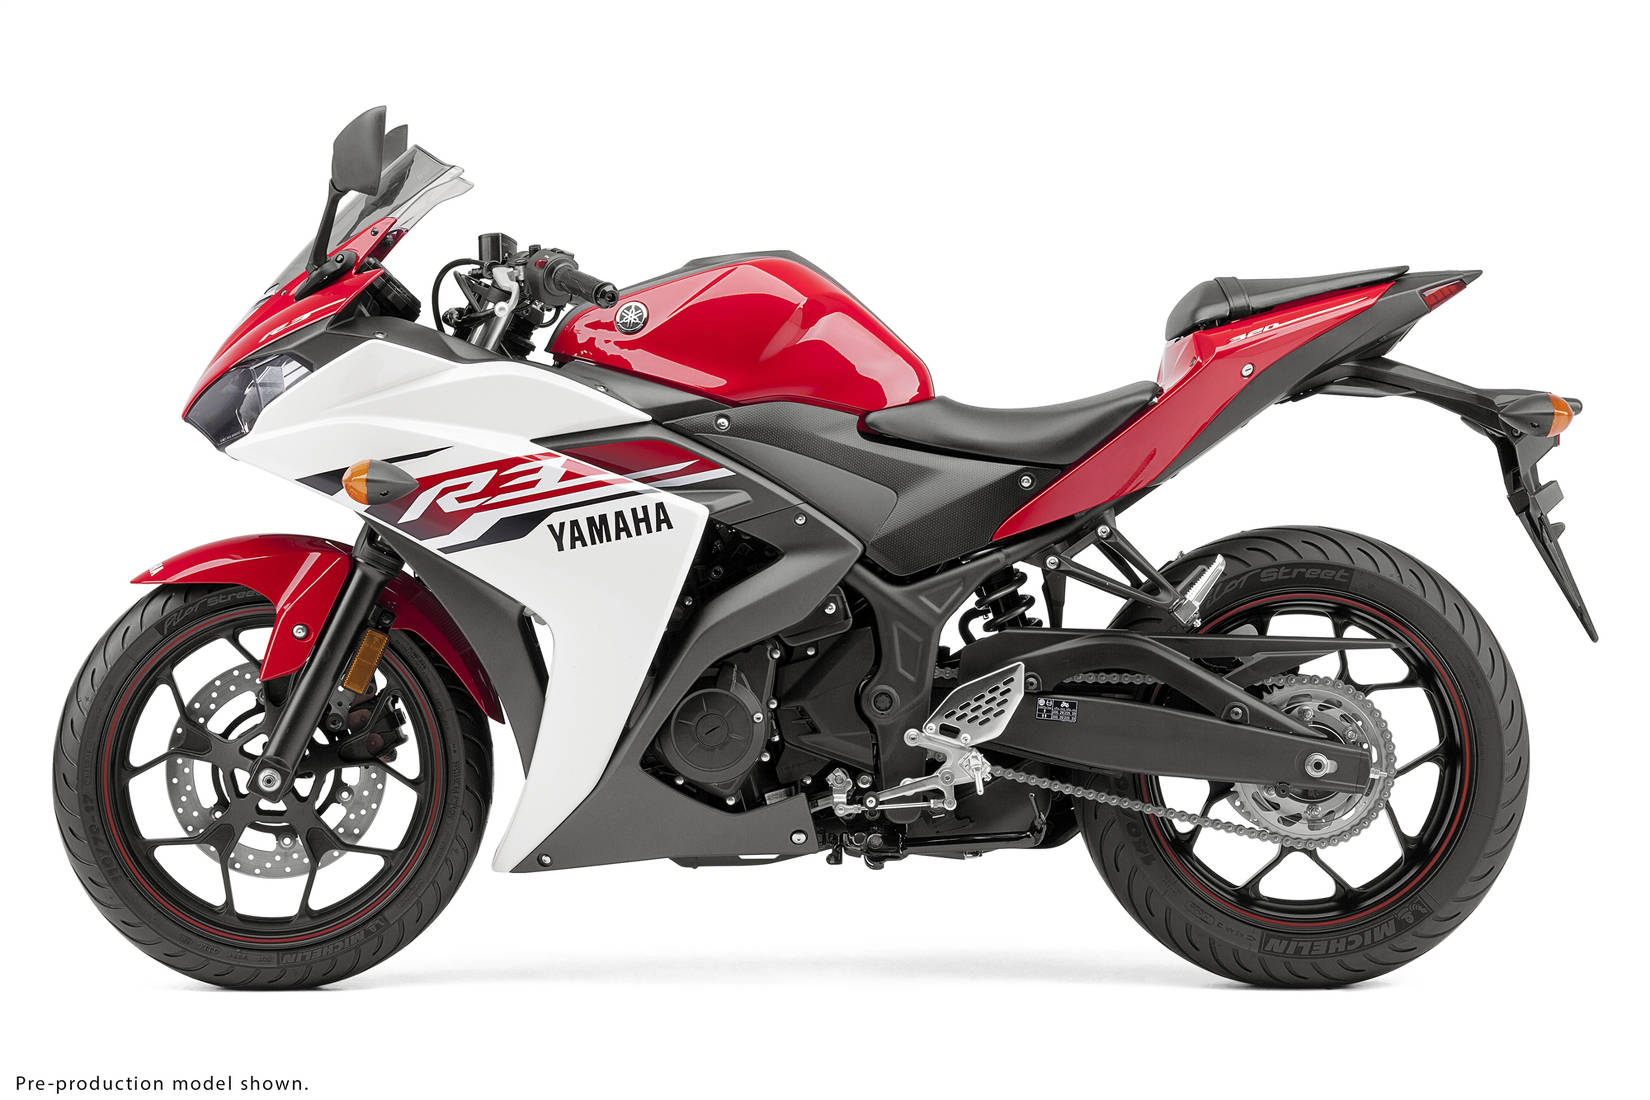 Yamaha Unveils 2015 Yzf R3 Goes Big With 321cc Parallel